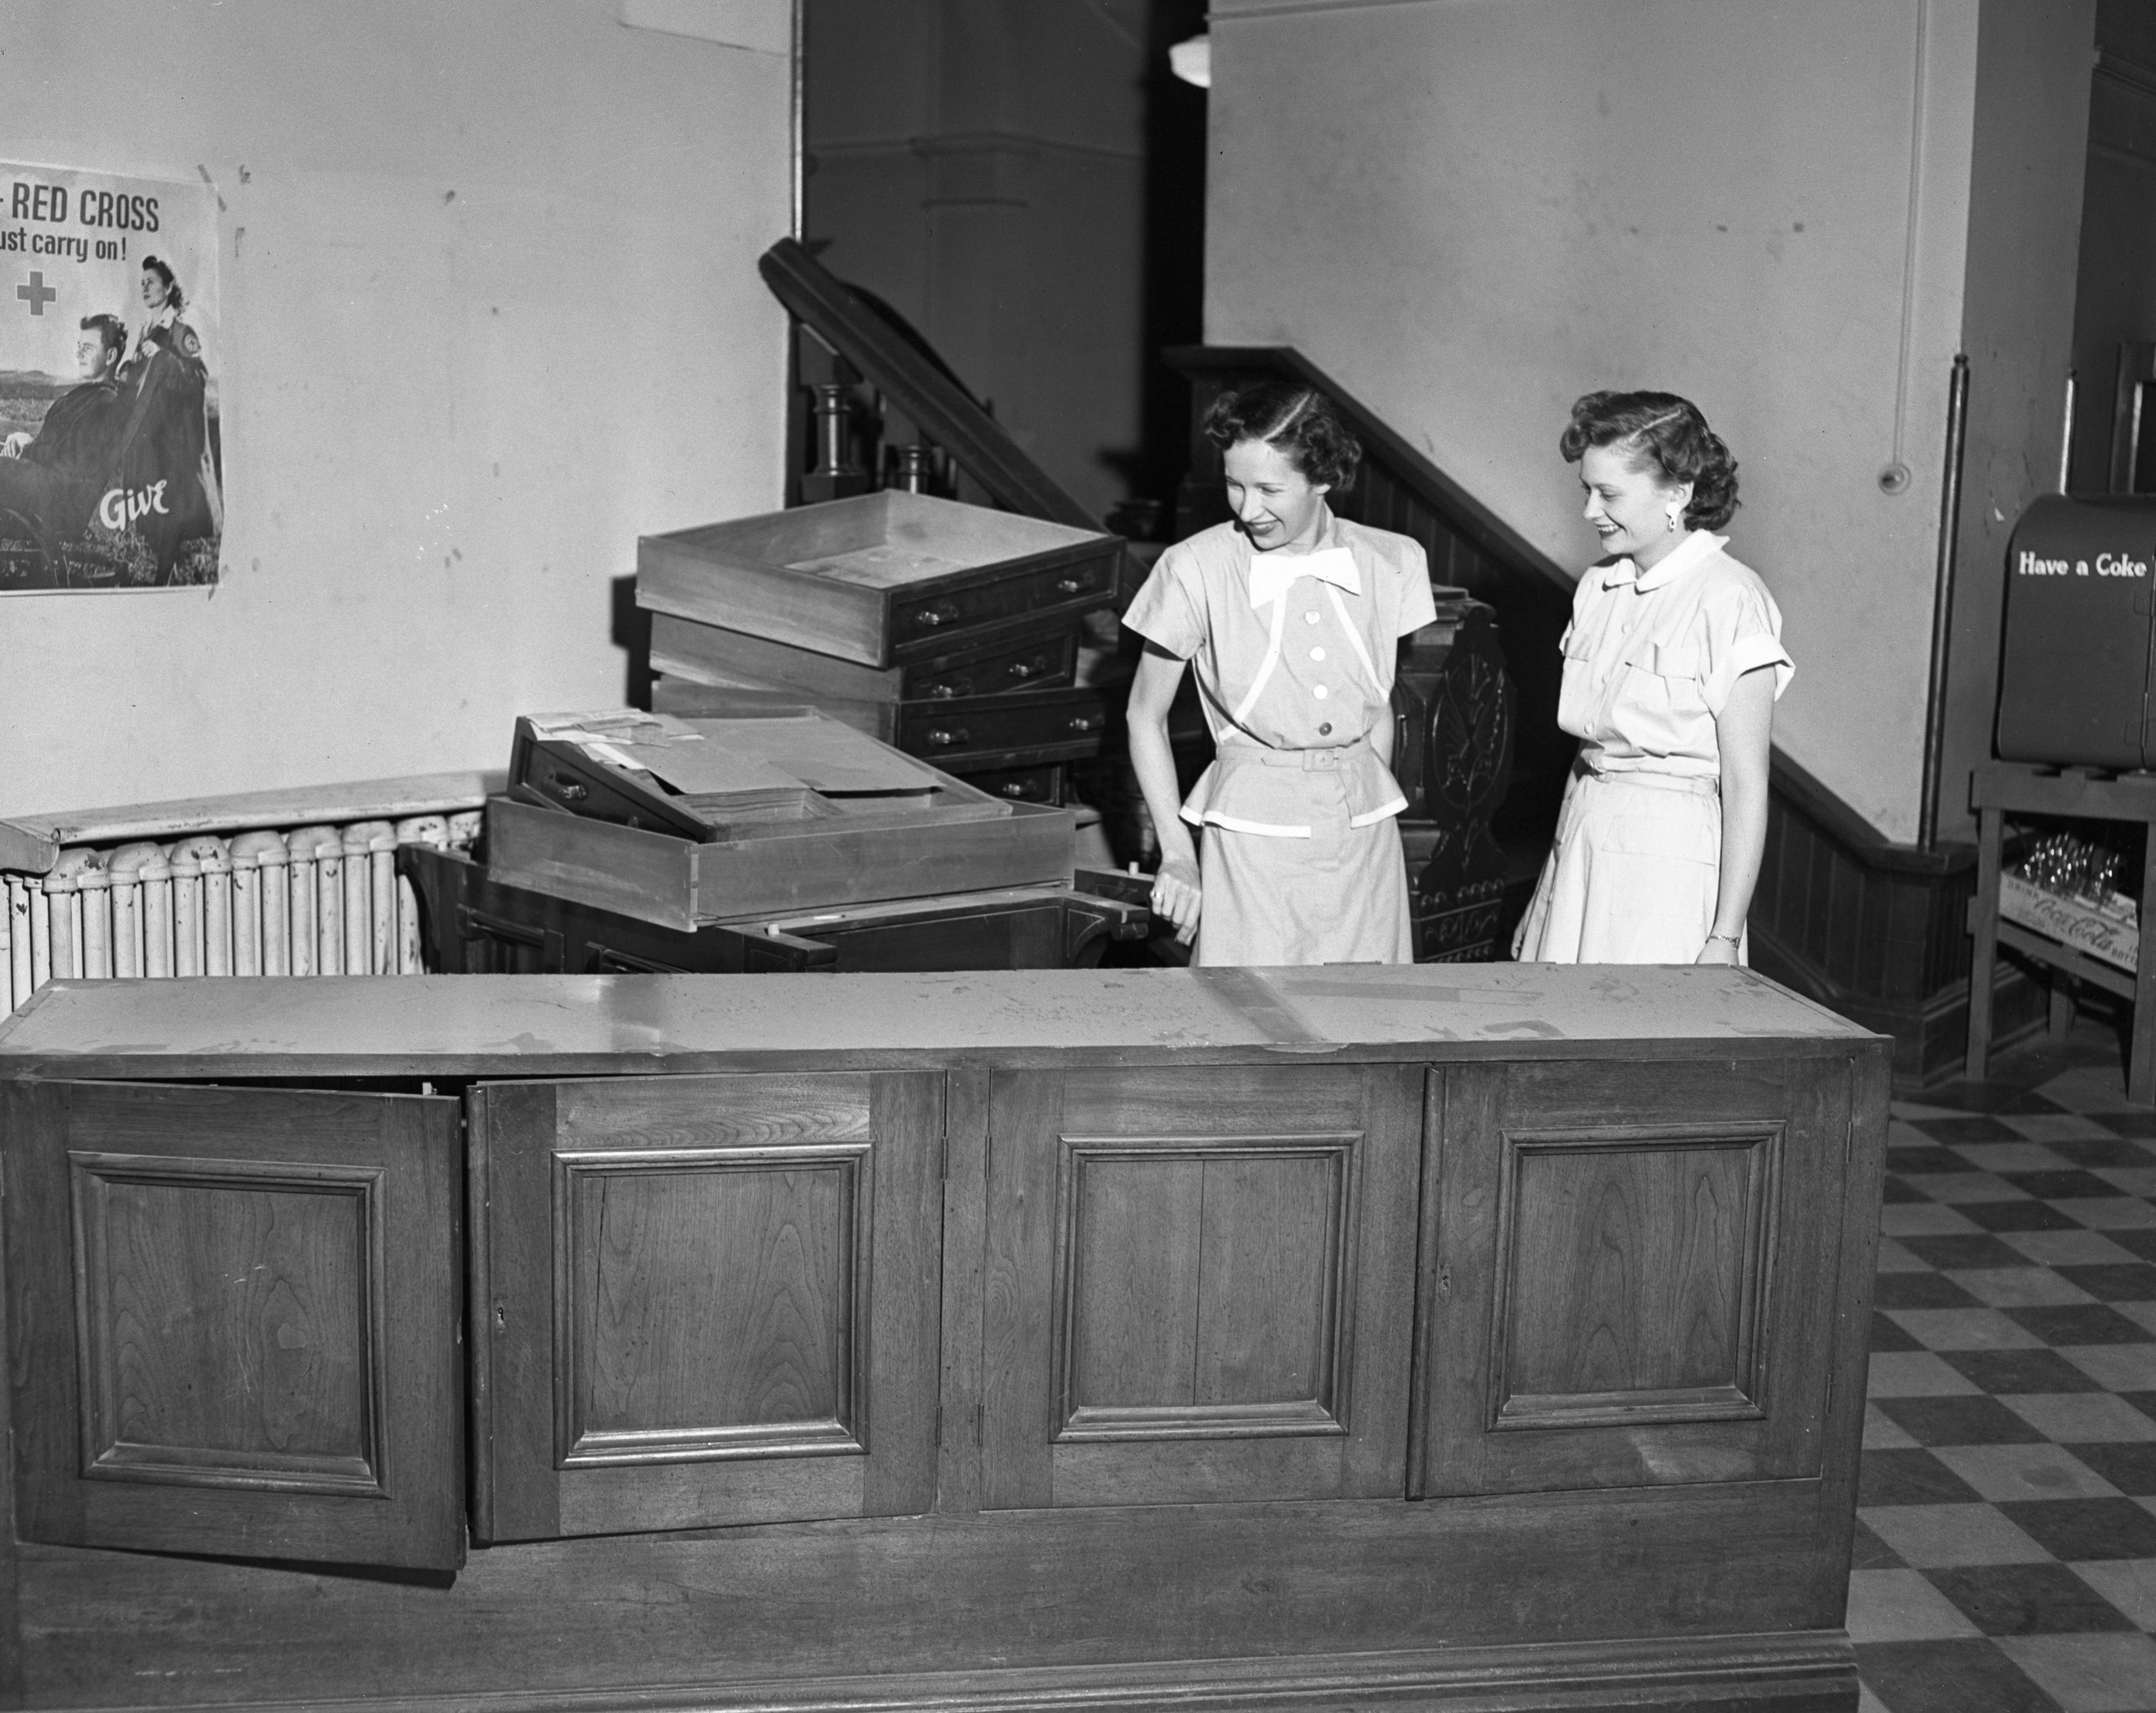 Moving equipment in the old Washtenaw County Courthouse, circa 1953 image